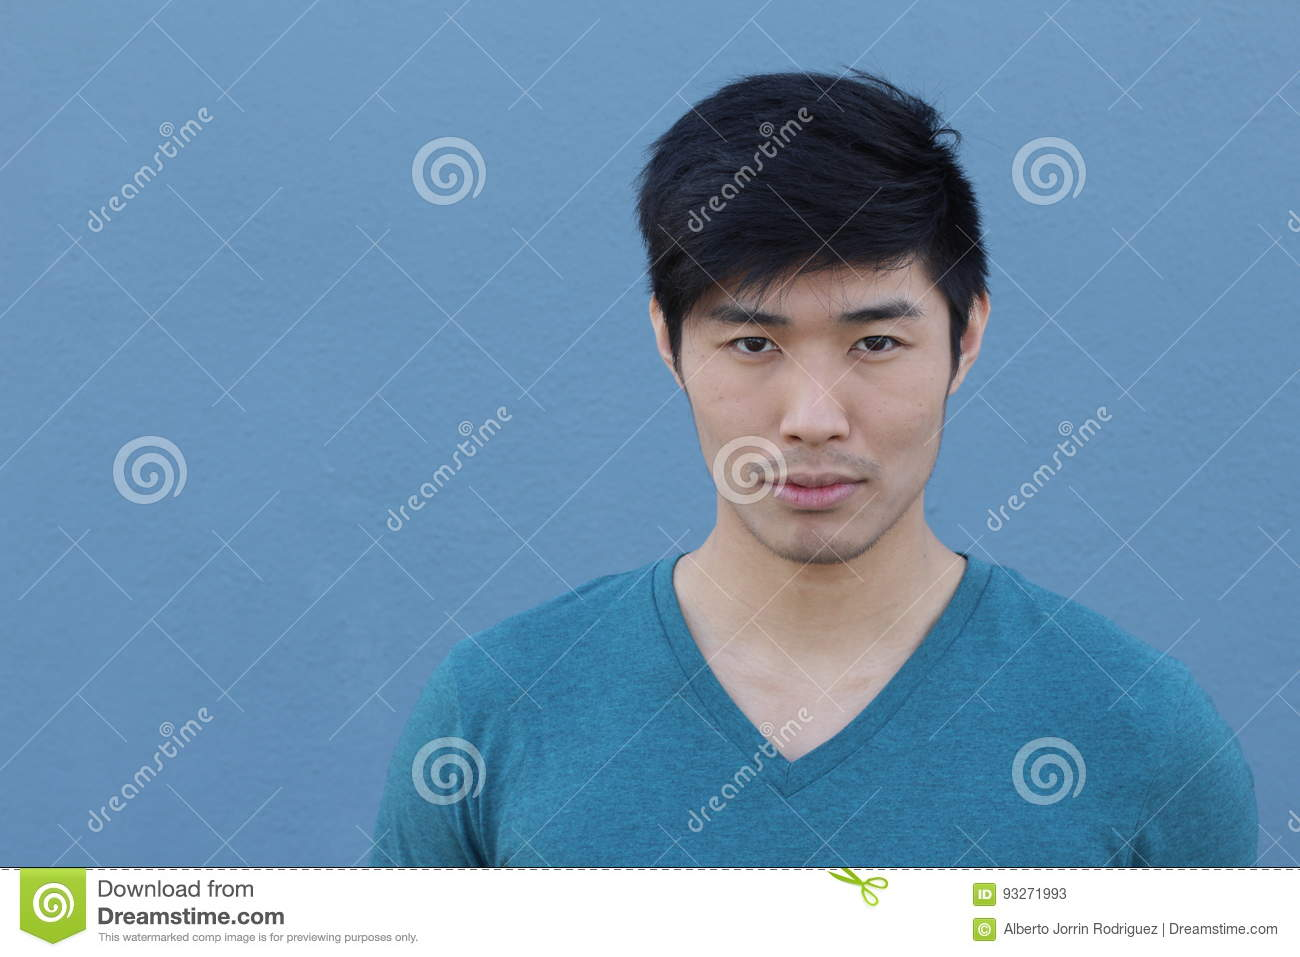 Striking man with neutral expression close up with copy space